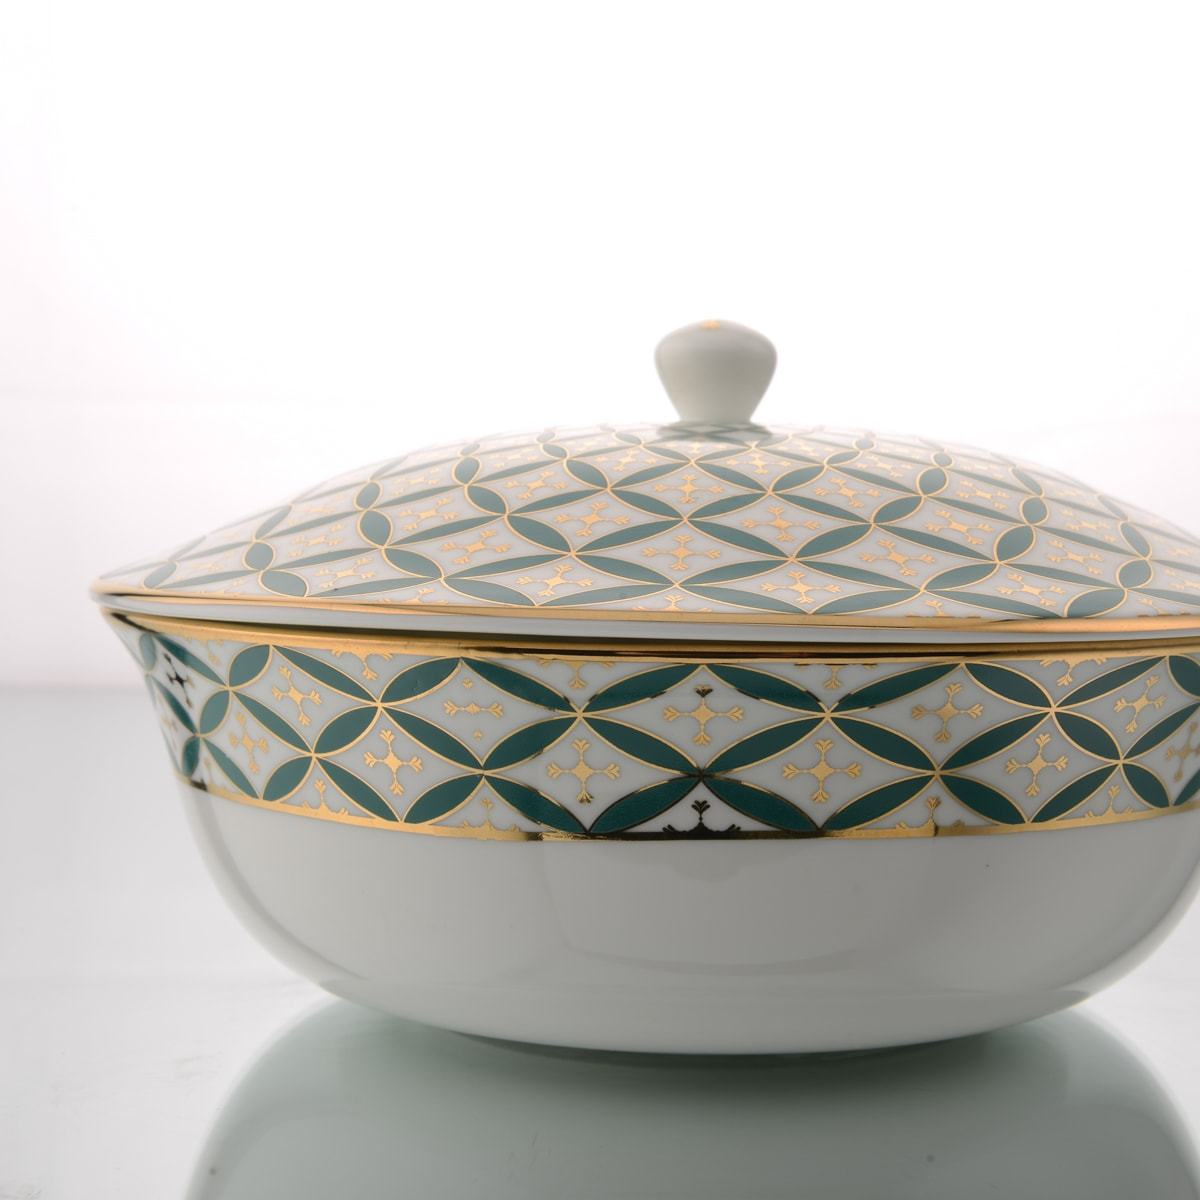 Buy Jyamiti Serving Bowl With Lid 2 Portion By Kaunteya Home Artisan